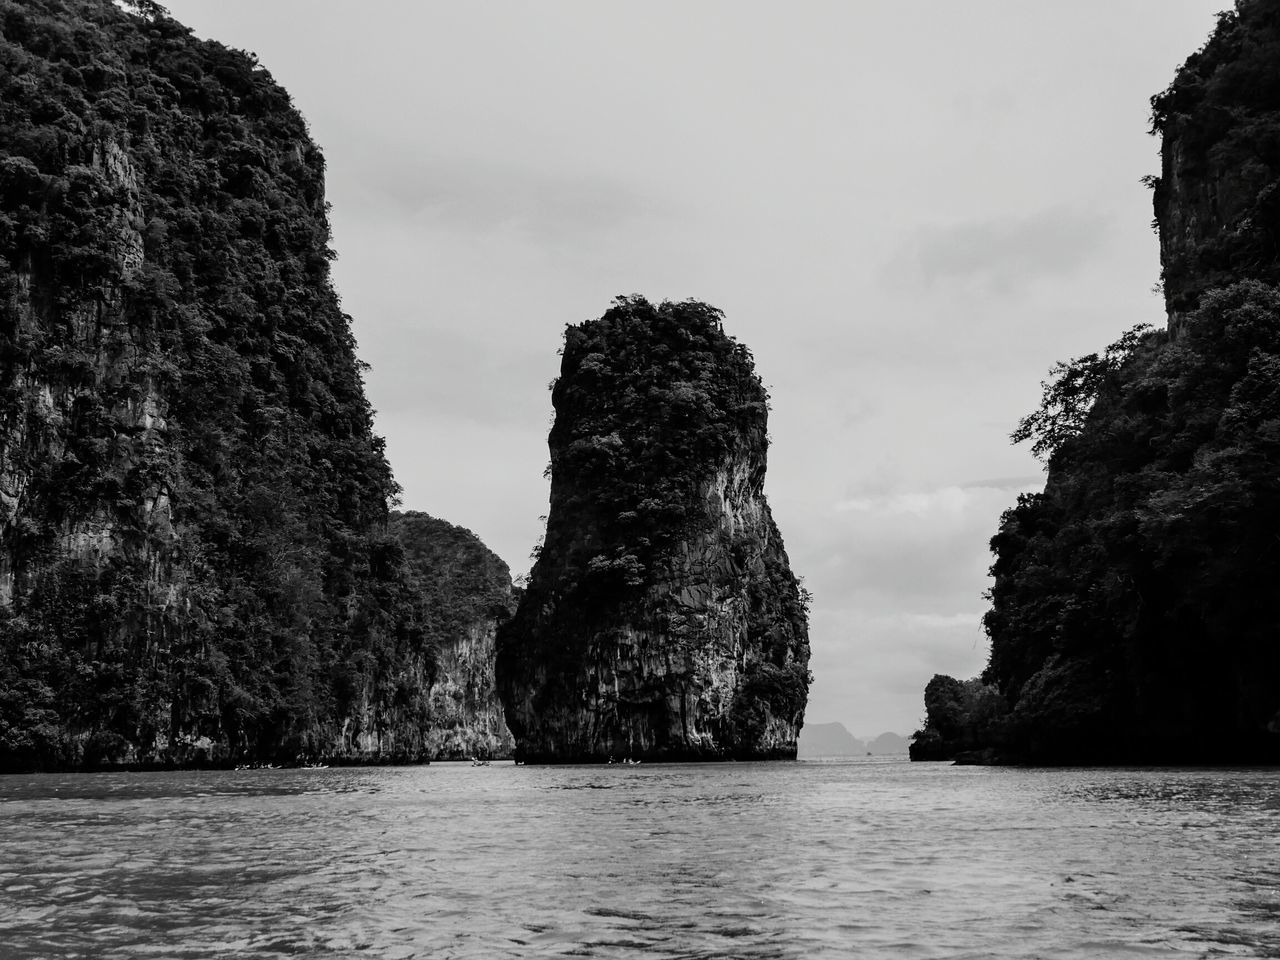 kayaking in Ao Phang Nga Landscape Travel Travel Destinations Traveling Landscapes Nature Beauty In Nature Nature_collection Landscape_Collection EyeEm Nature Lover Outdoors On The Road Kayaking Vacations Holiday Thailand Blackandwhite Black And White Black & White Life Is A Beach Water Tourism Eye4photography  The Great Outdoors - 2017 EyeEm Awards